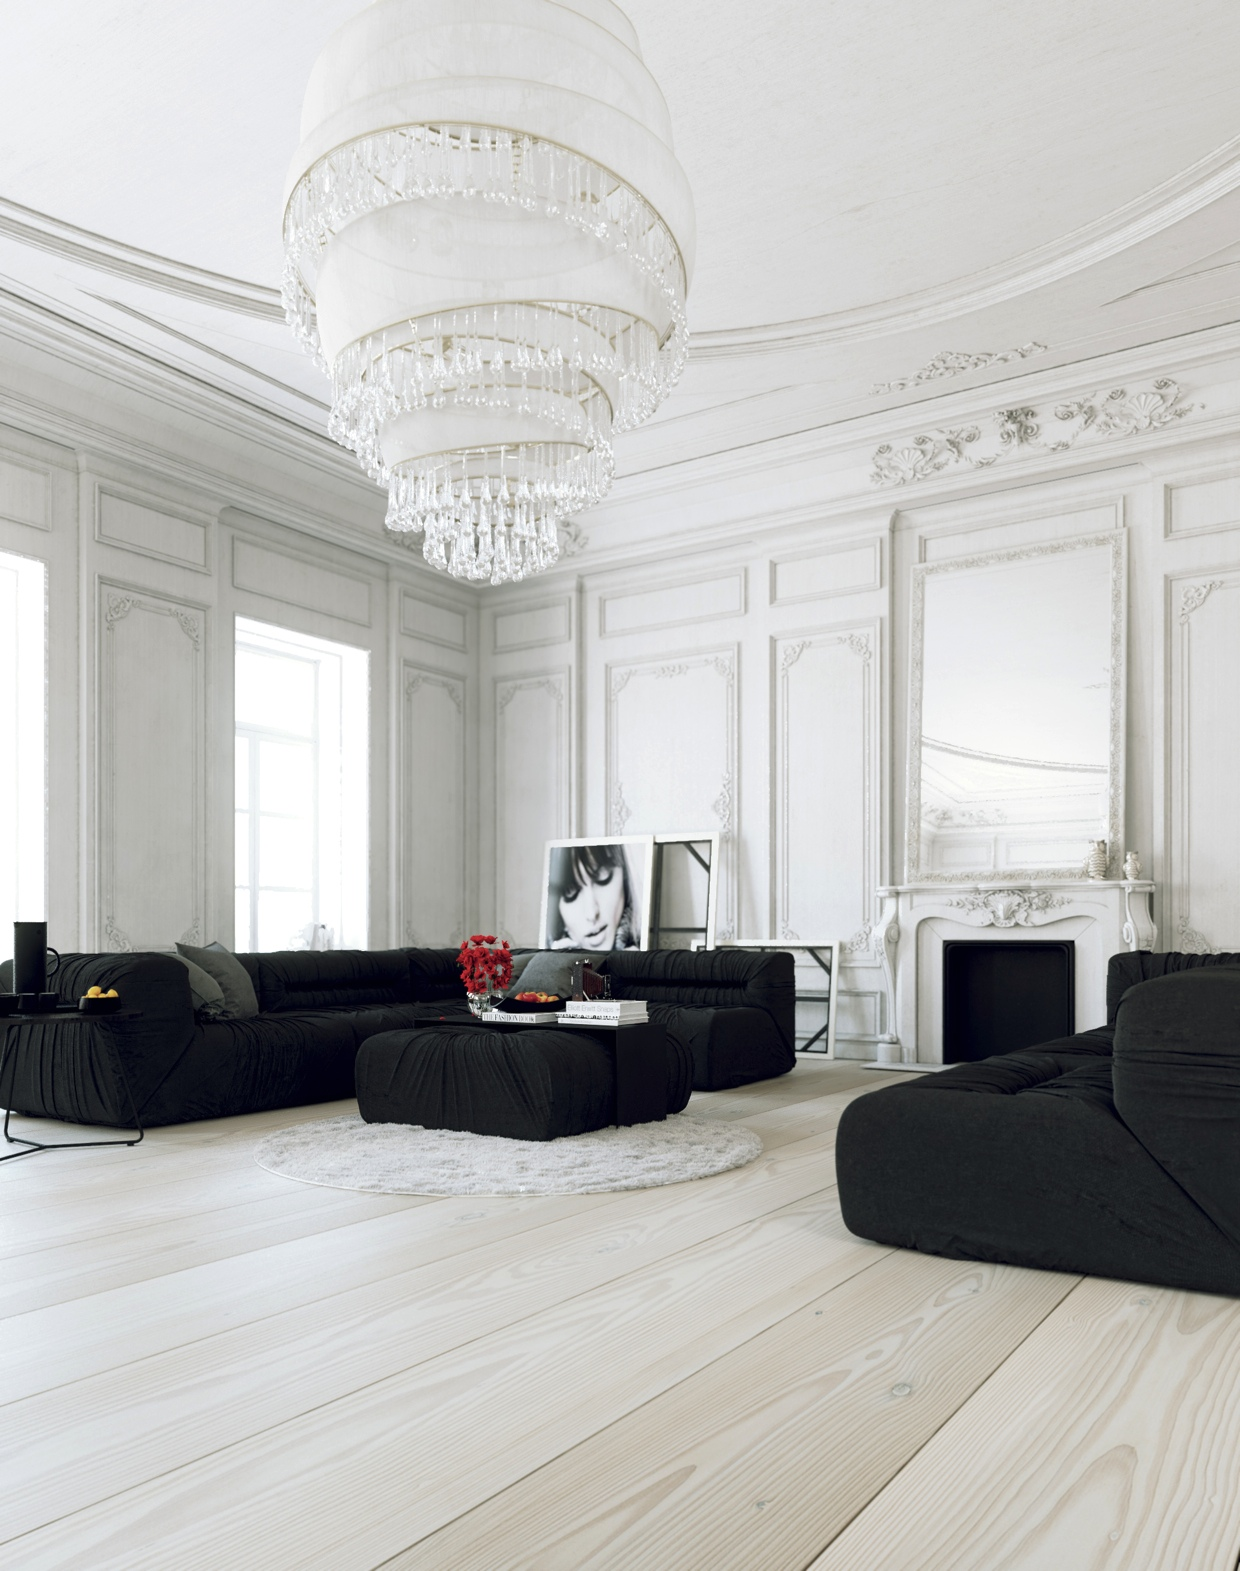 Parisian apartment living with large white chandelier and Luxury design floors